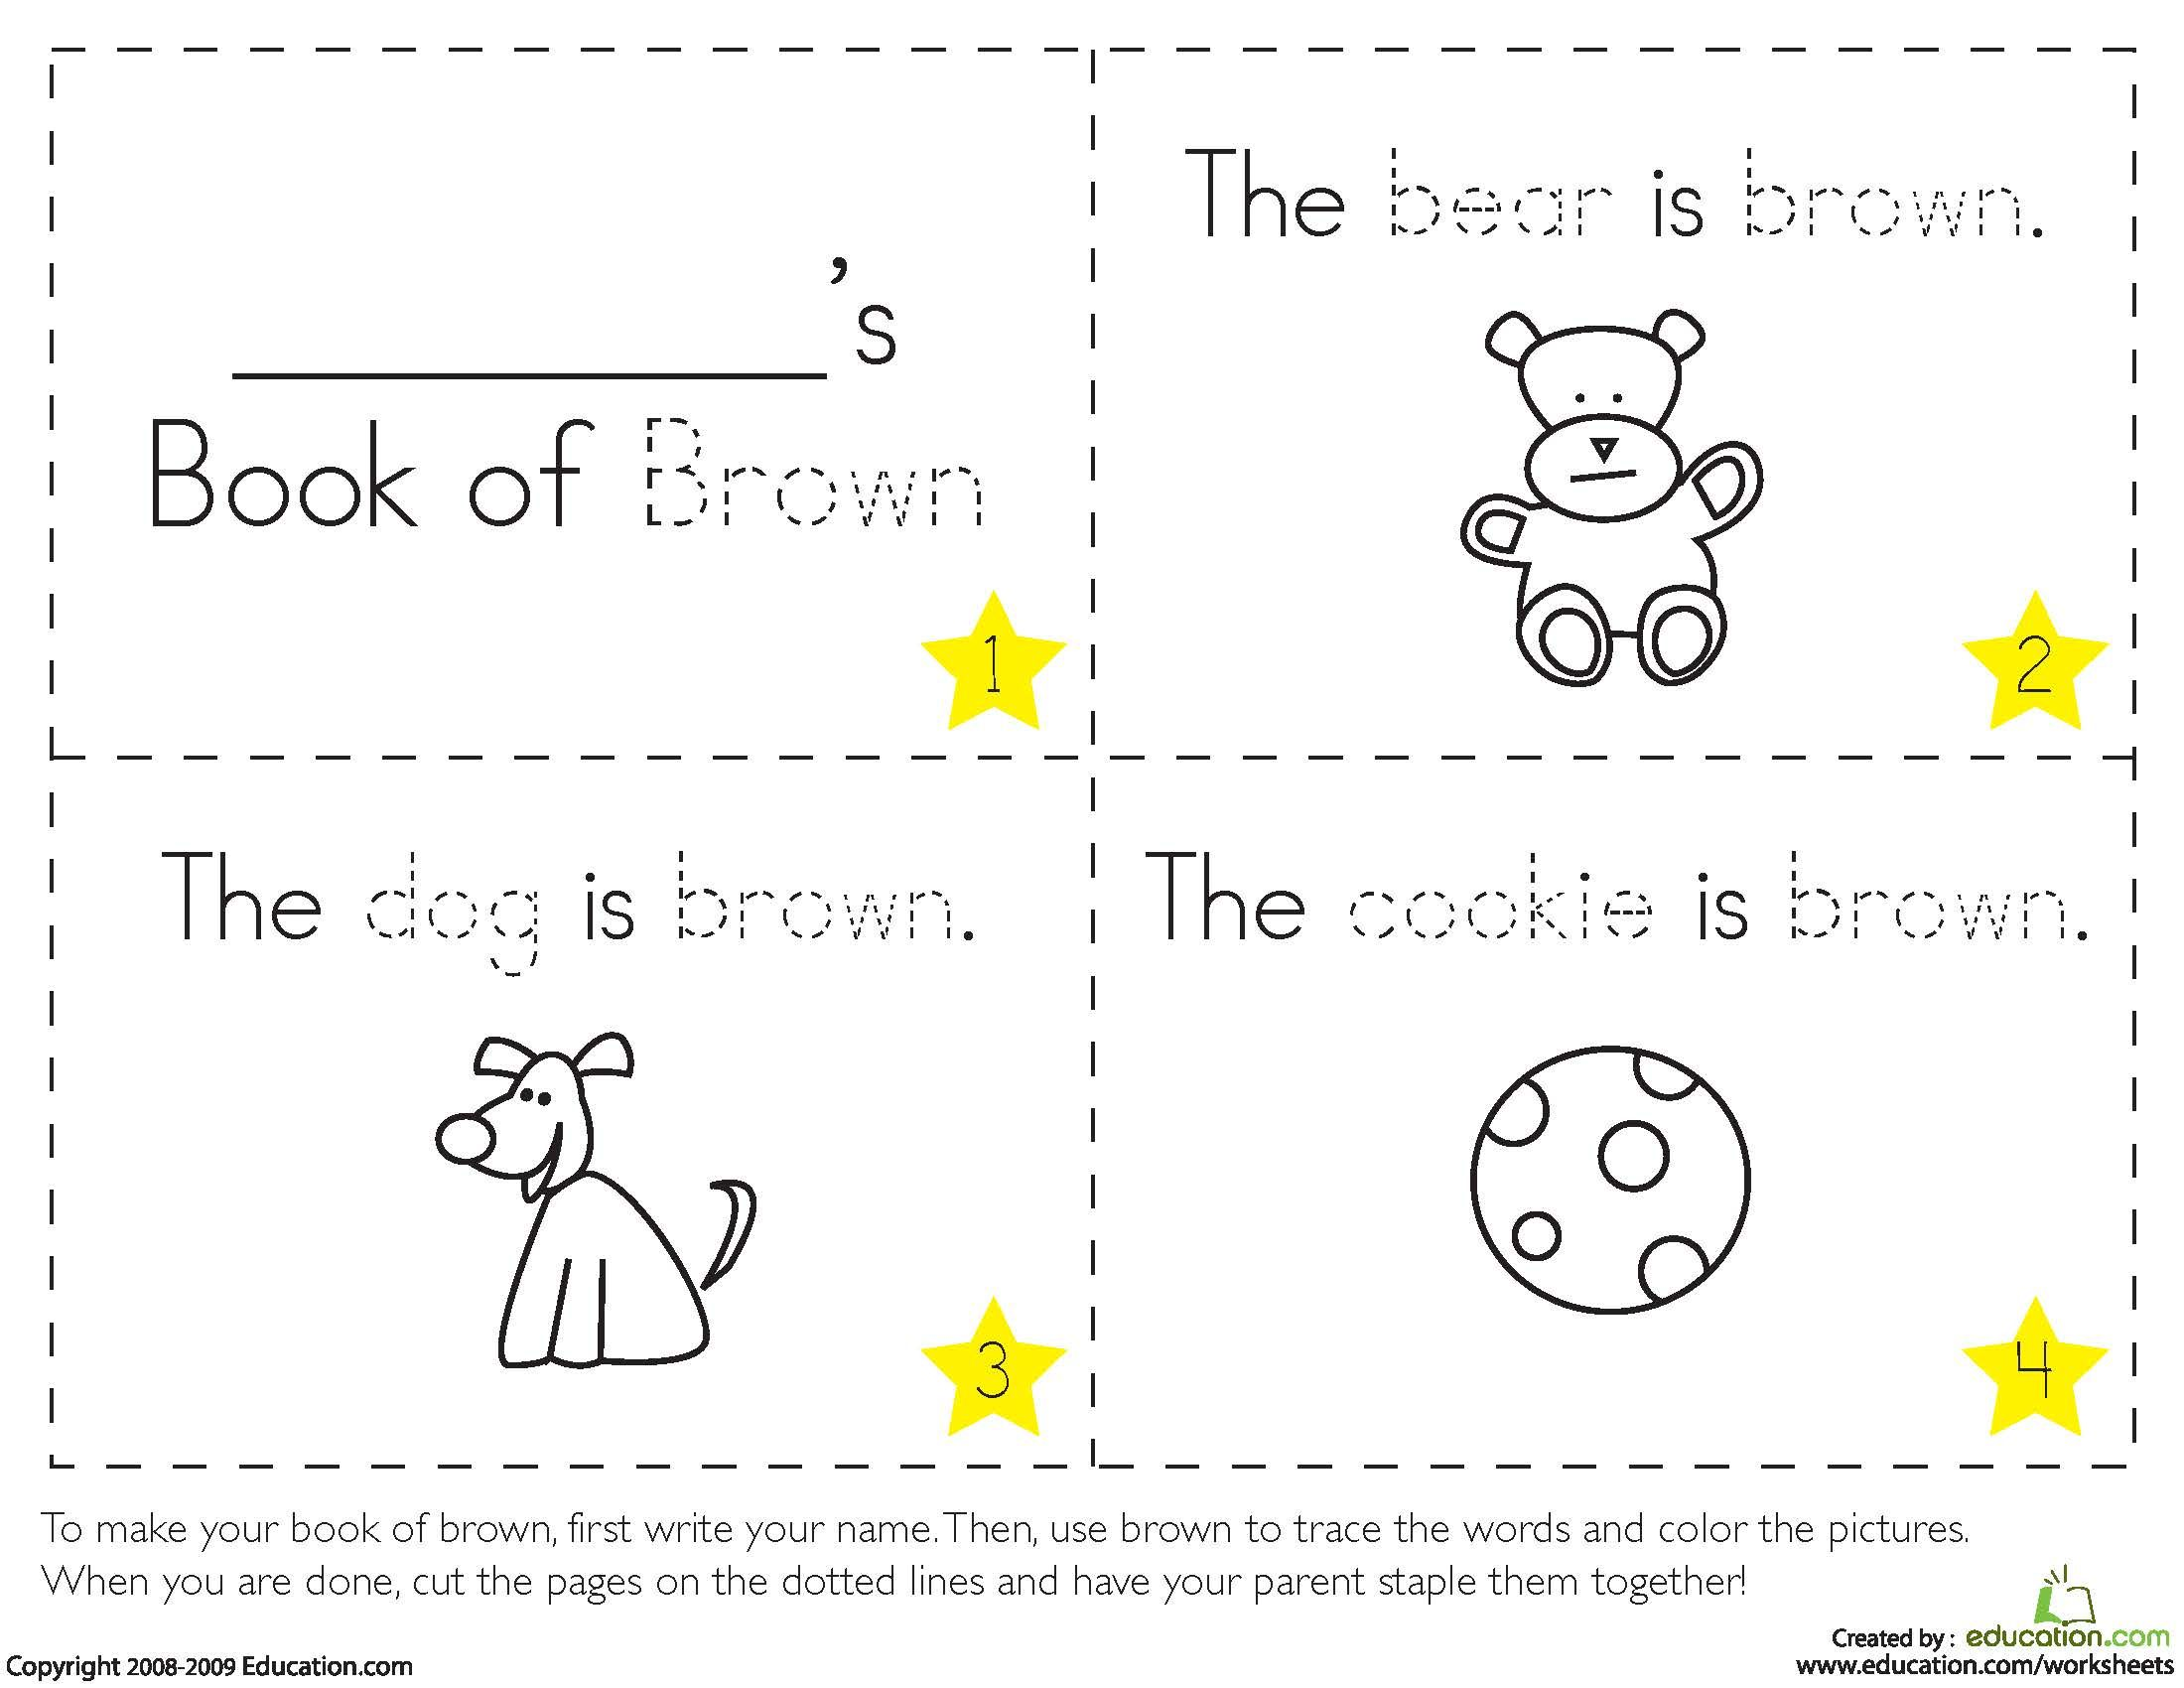 worksheet Color Brown Worksheets teaching colors brown home schooling pinterest brown